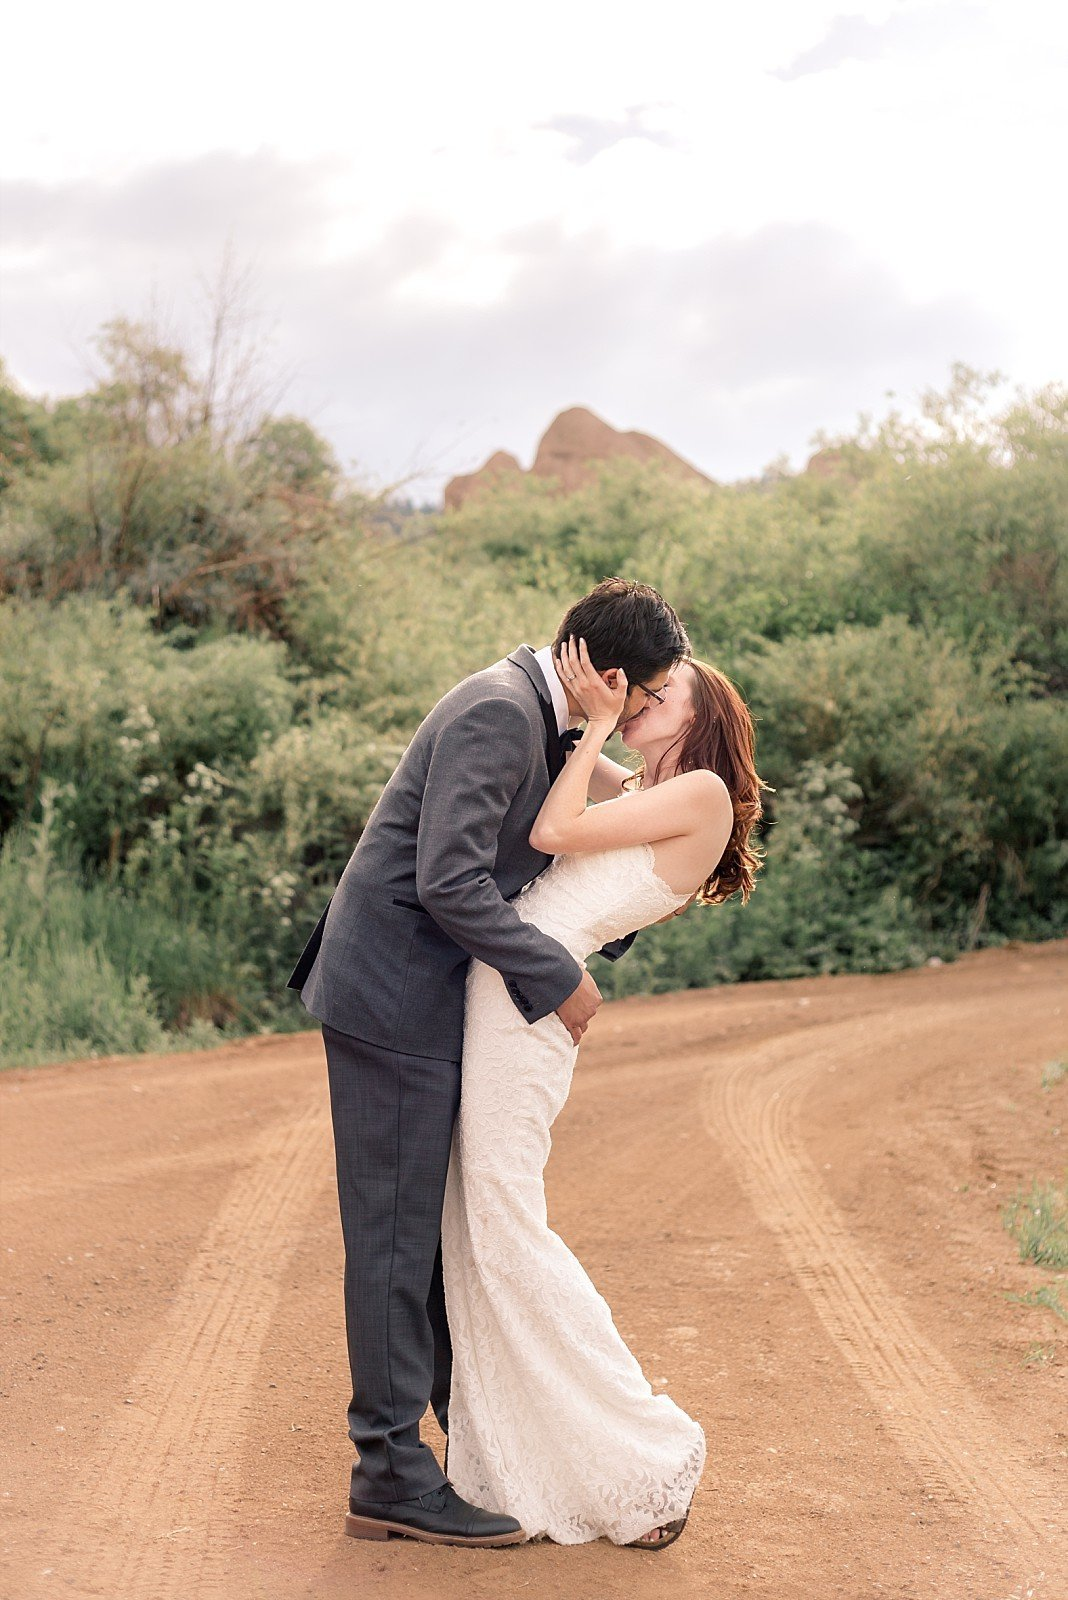 Colorado-Wedding-Photographer_Shelby-Gloudemans_0240